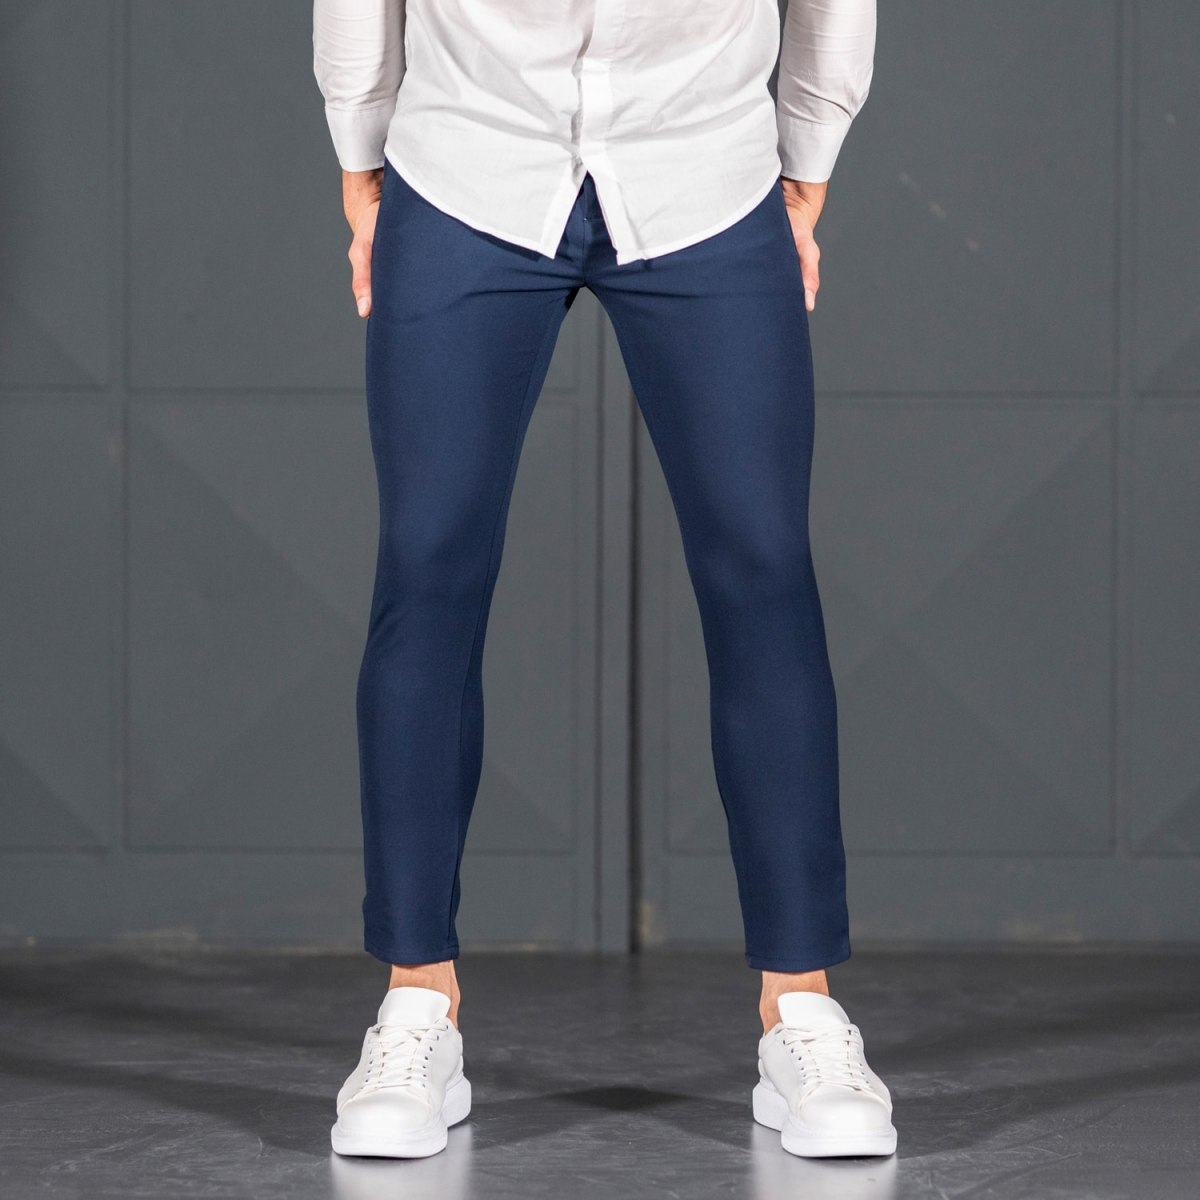 Navy Blue Slim-Fit Trousers Mv Premium Brand - 1